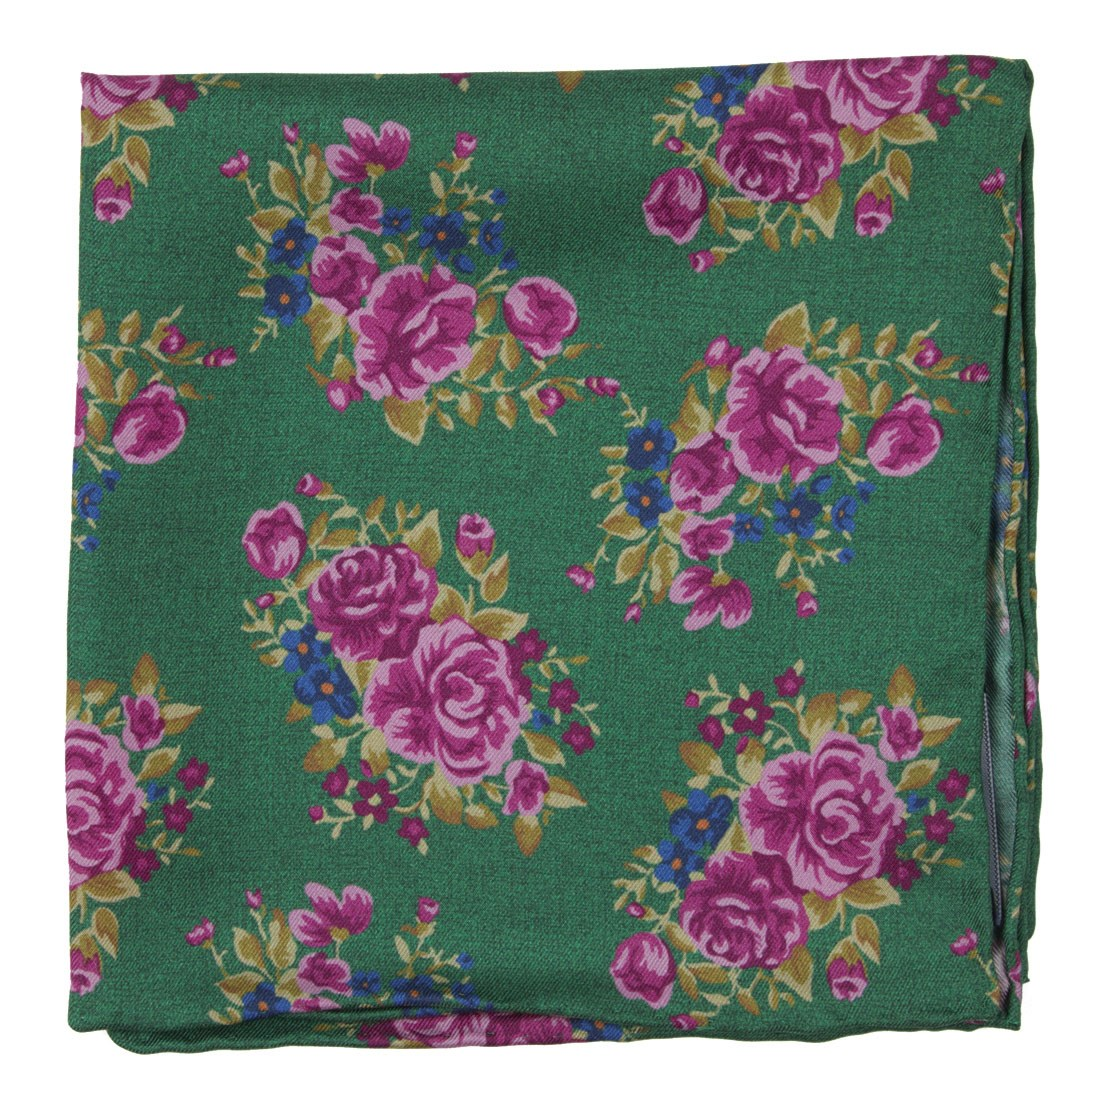 Hinterland Floral in Kelly Green